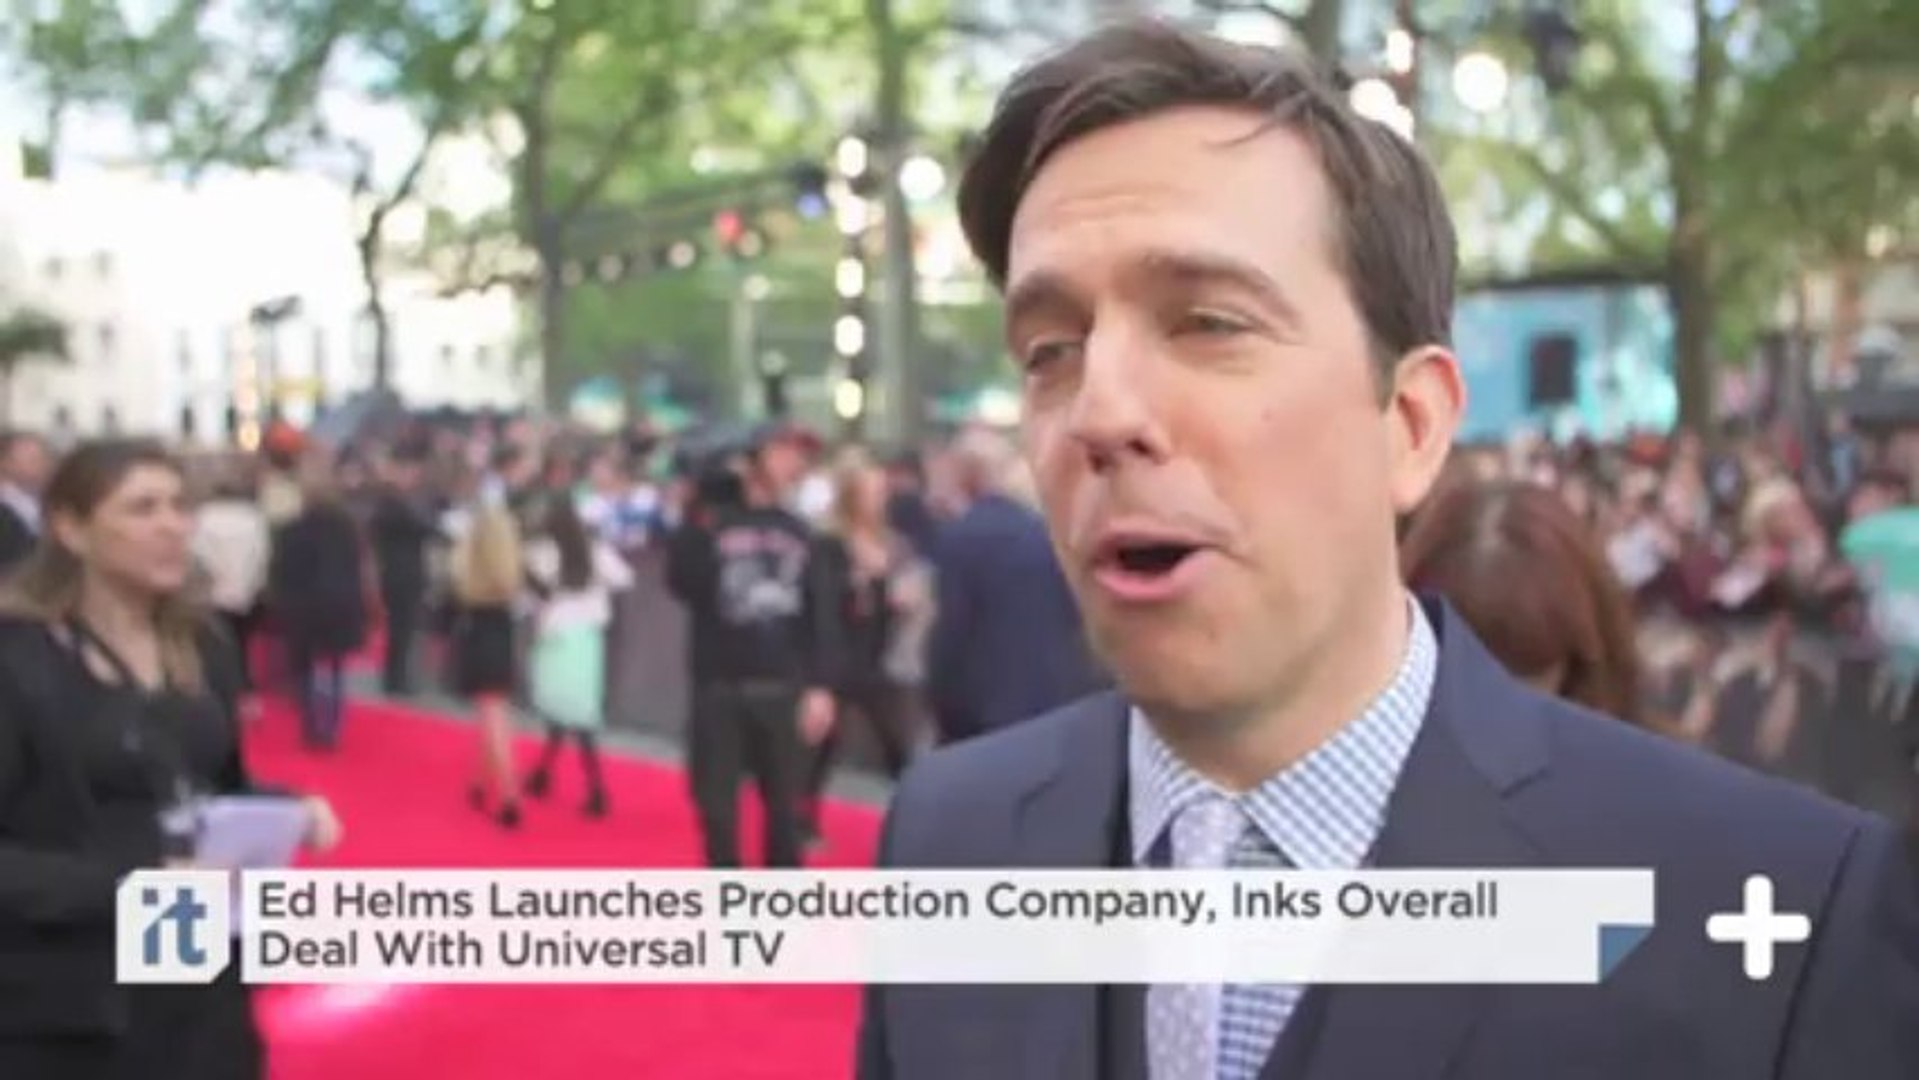 Ed Helms Launches Production Company, Inks Overall Deal With Universal TV